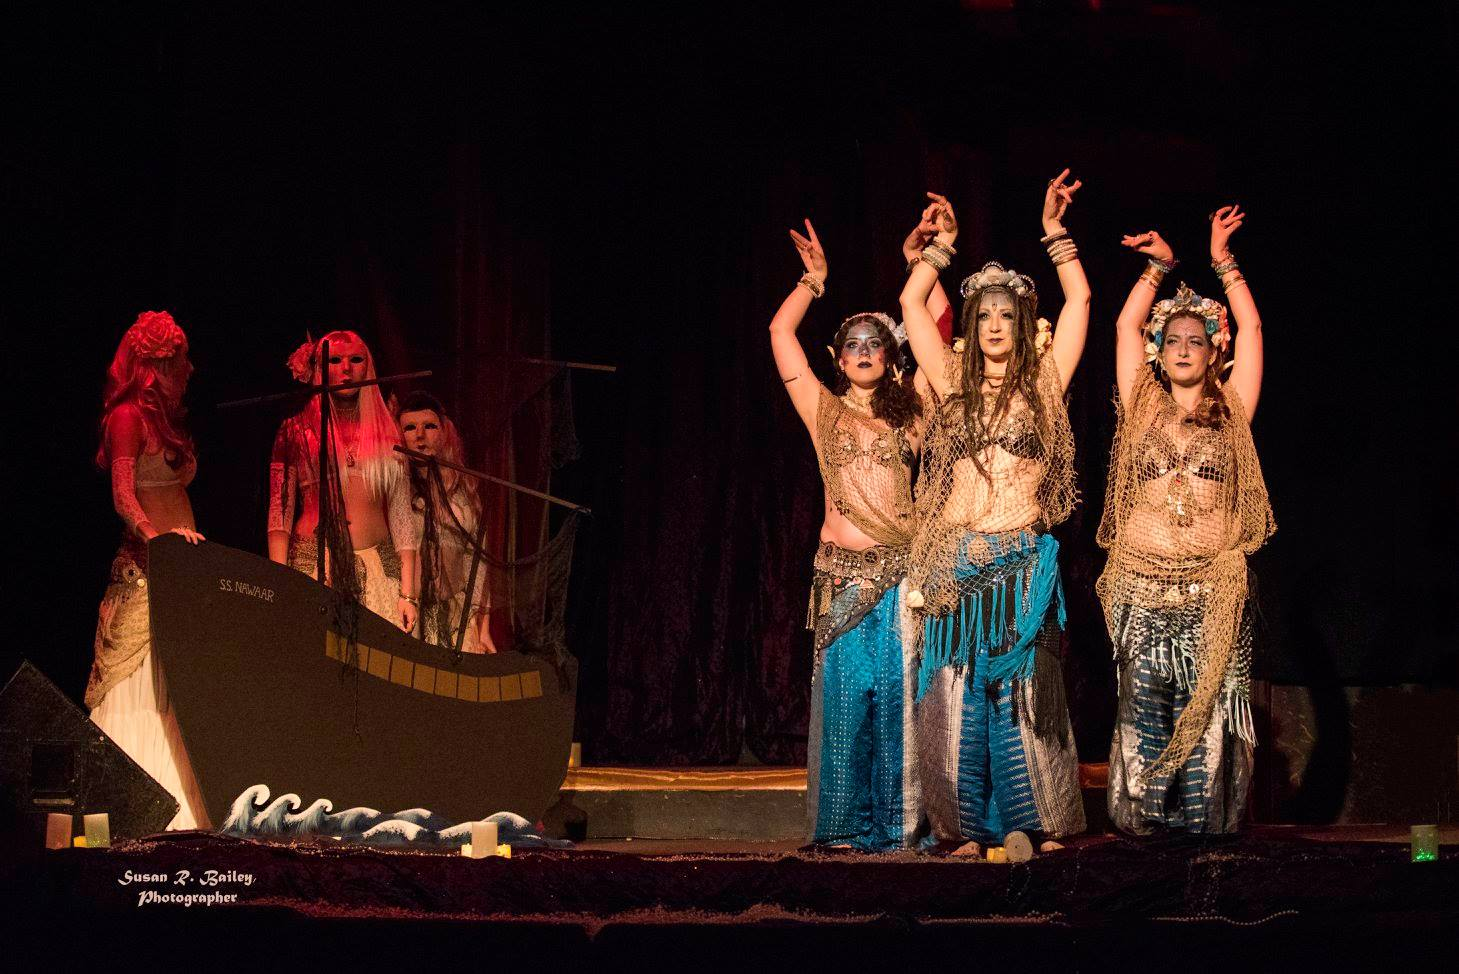 Tribe Nawaar performing at Illumination 2017 (photo courtesy Susan Bailey)